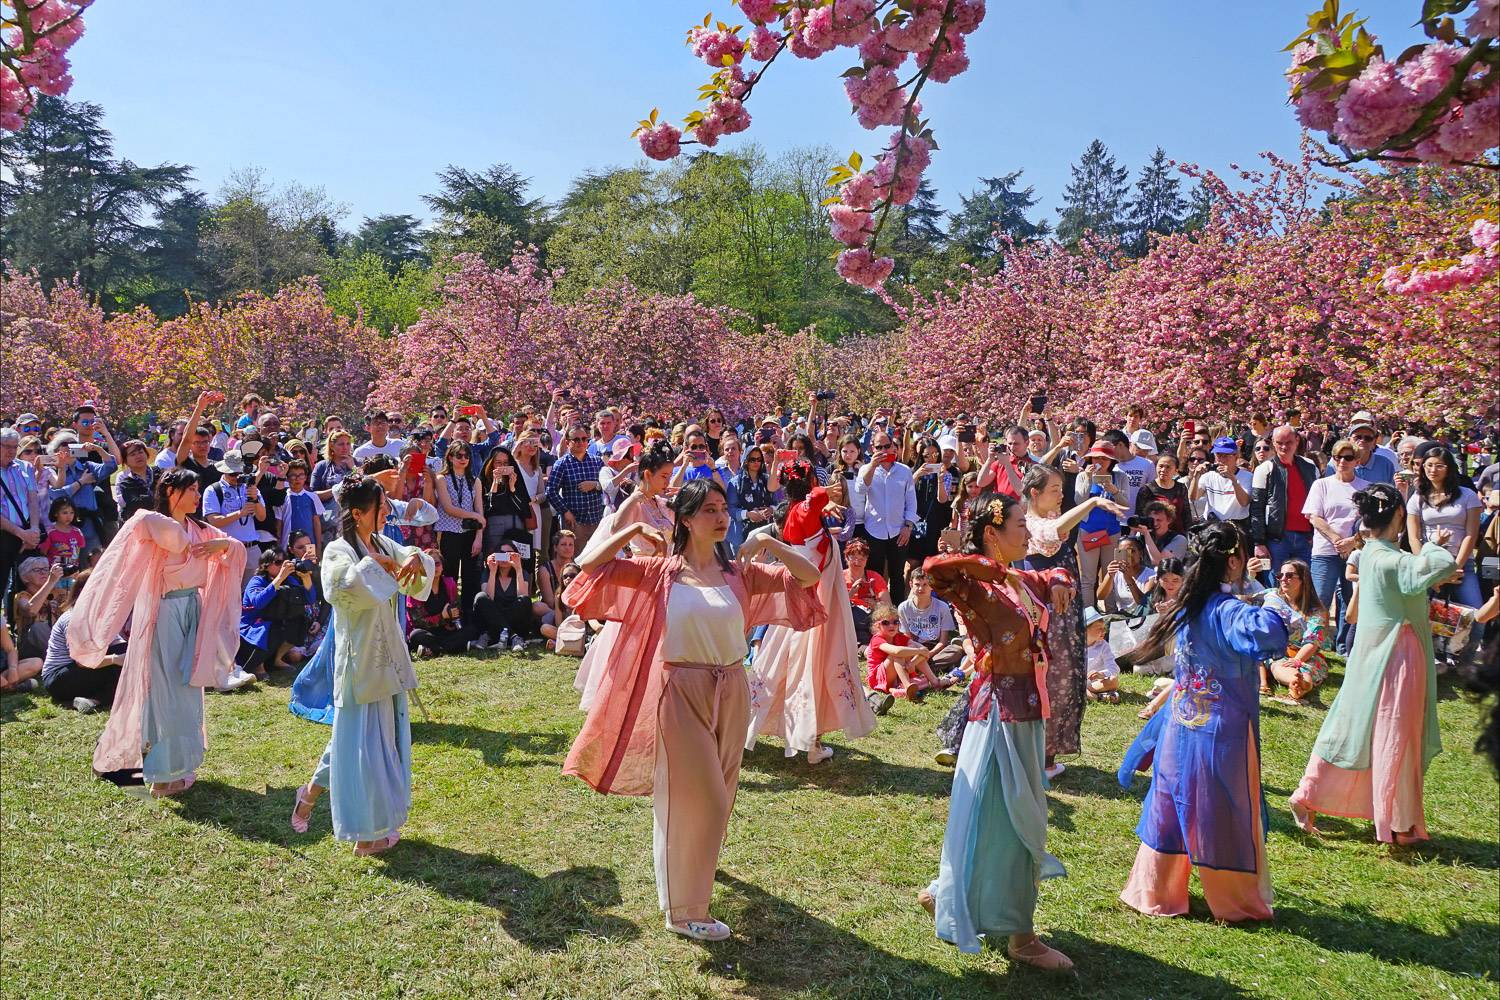 Image of traditional dancers at the Japanese Hanami festival at Paris' Parc de Sceaux sur-rounded by cherry blossom trees and a crowd of spectators